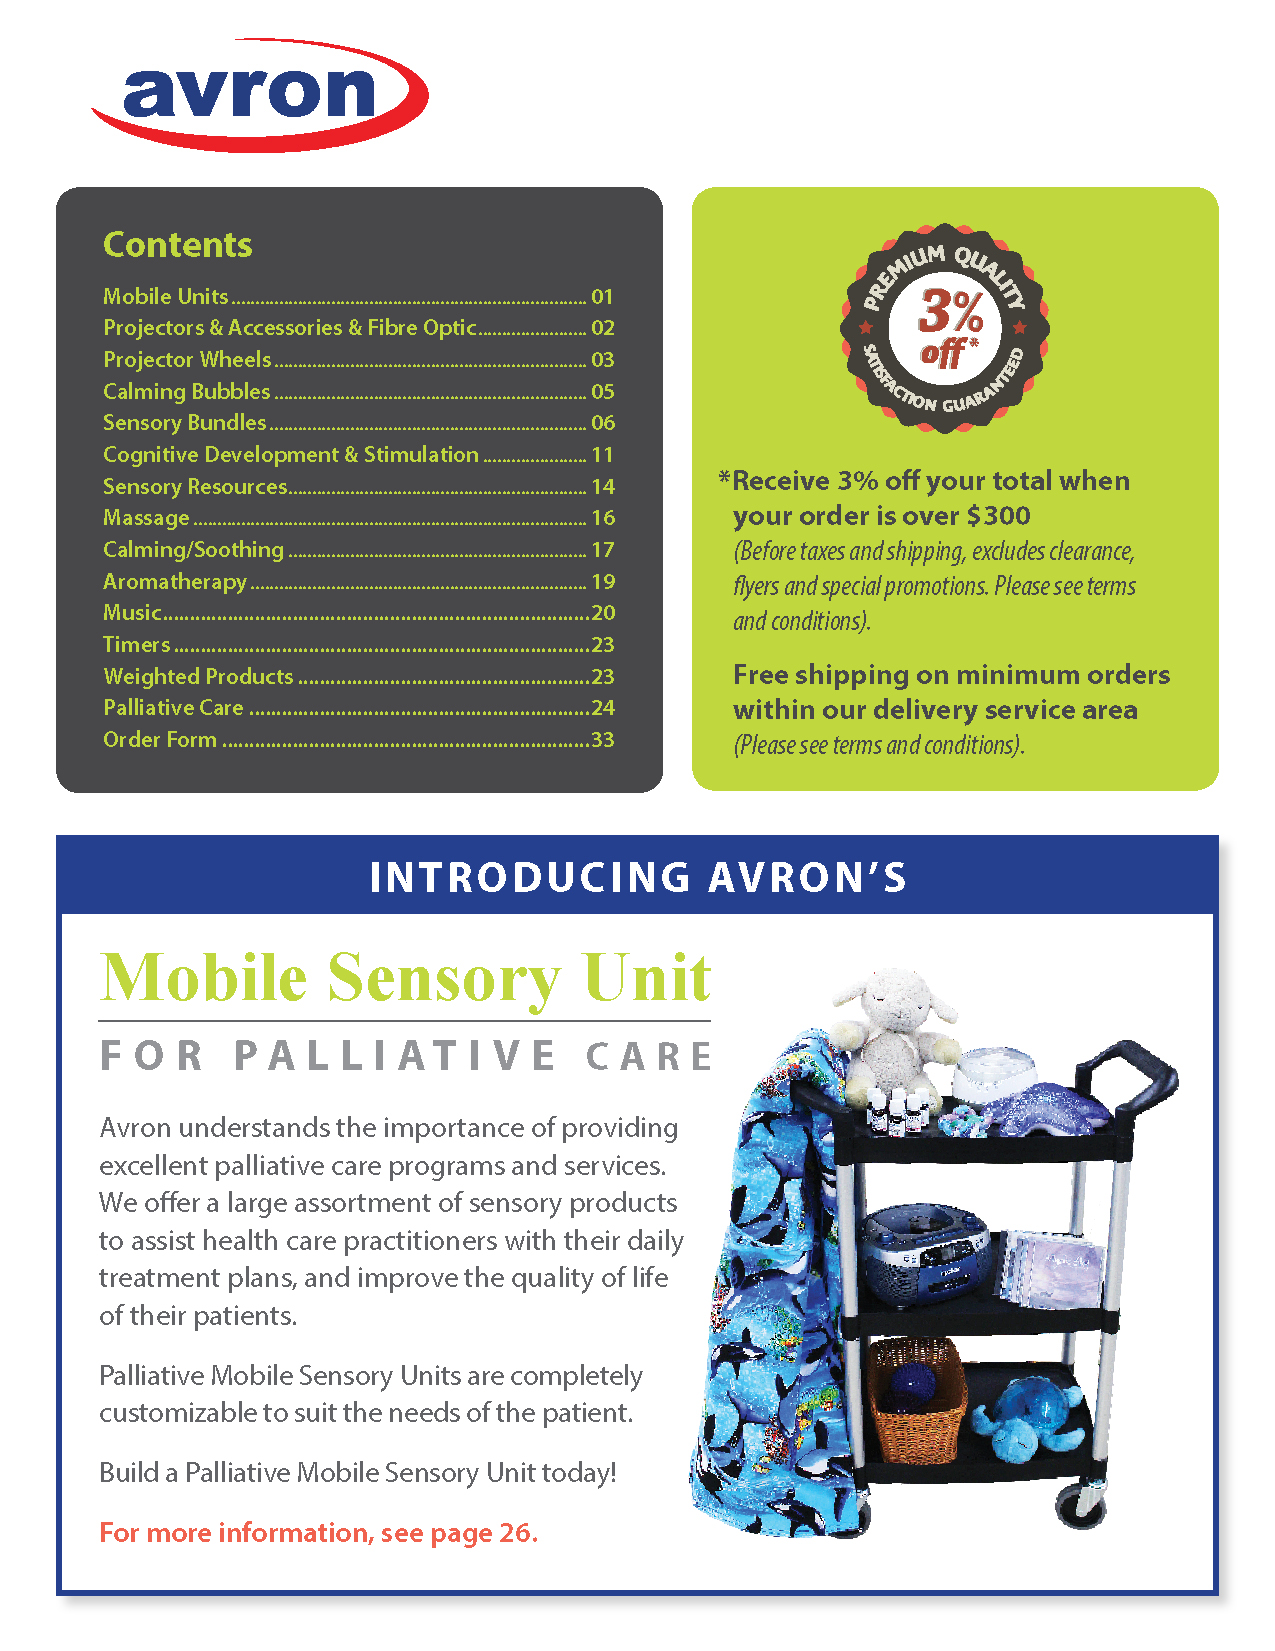 Mobile Sensory Unit Brochure_201505212